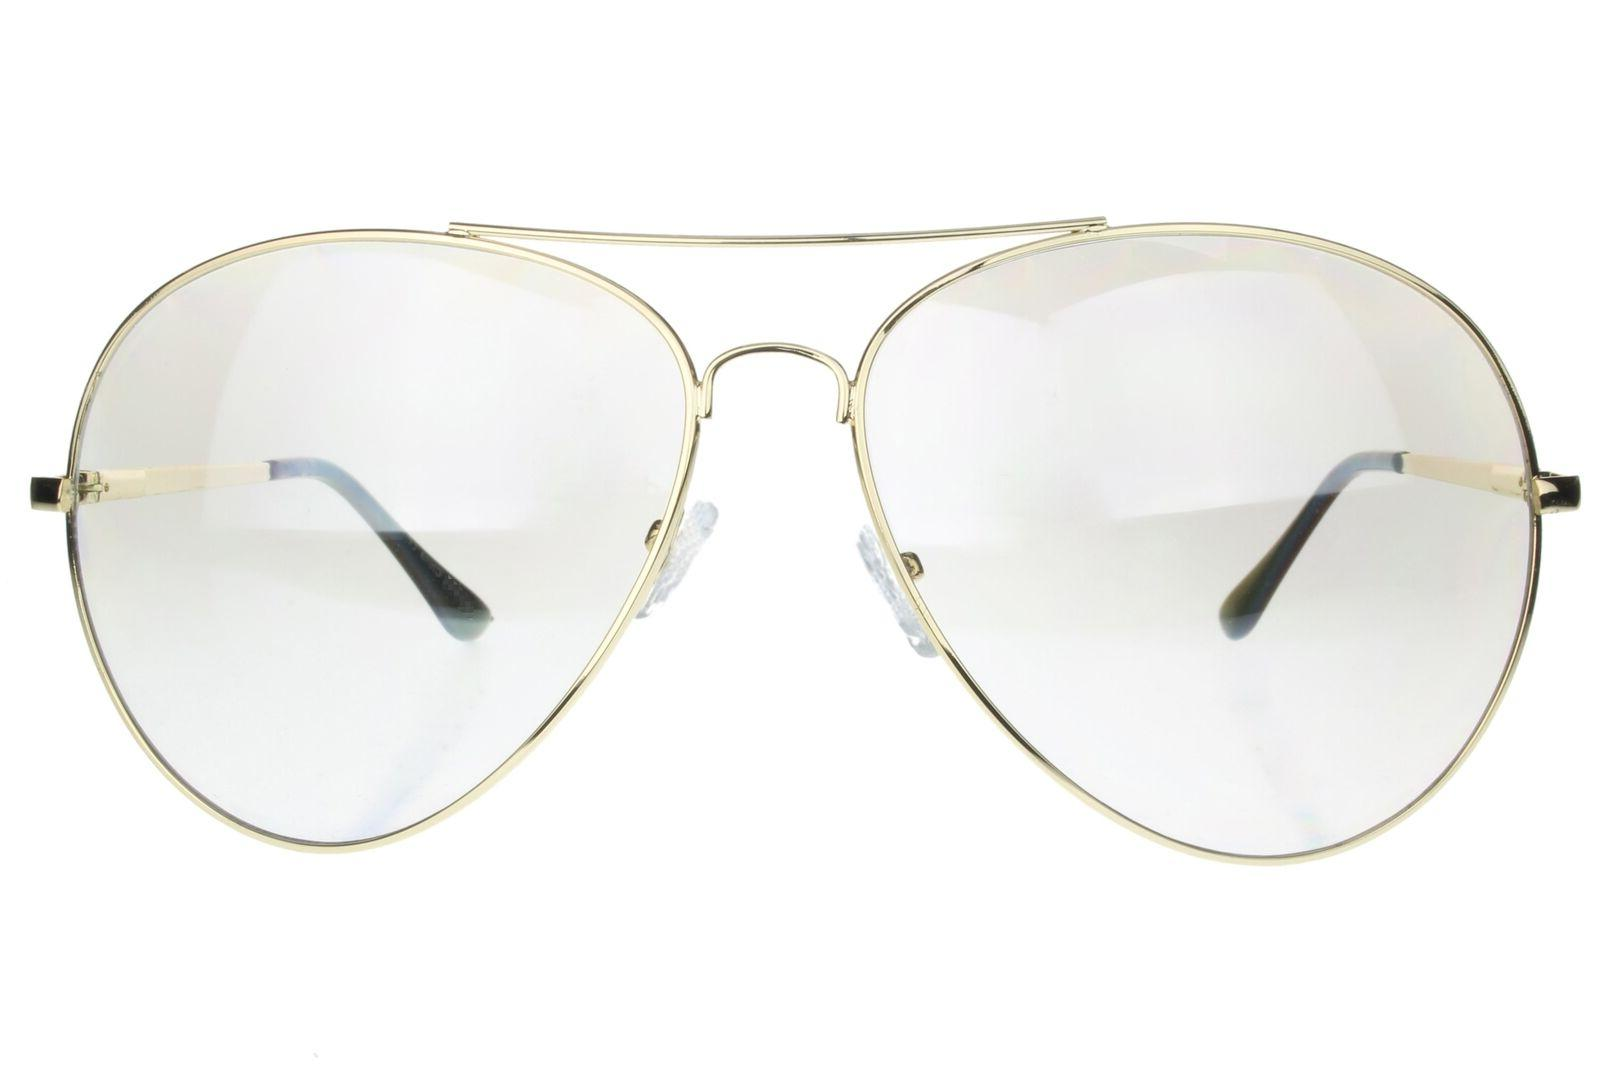 sunglasses extra wide frame 160mm xxl large